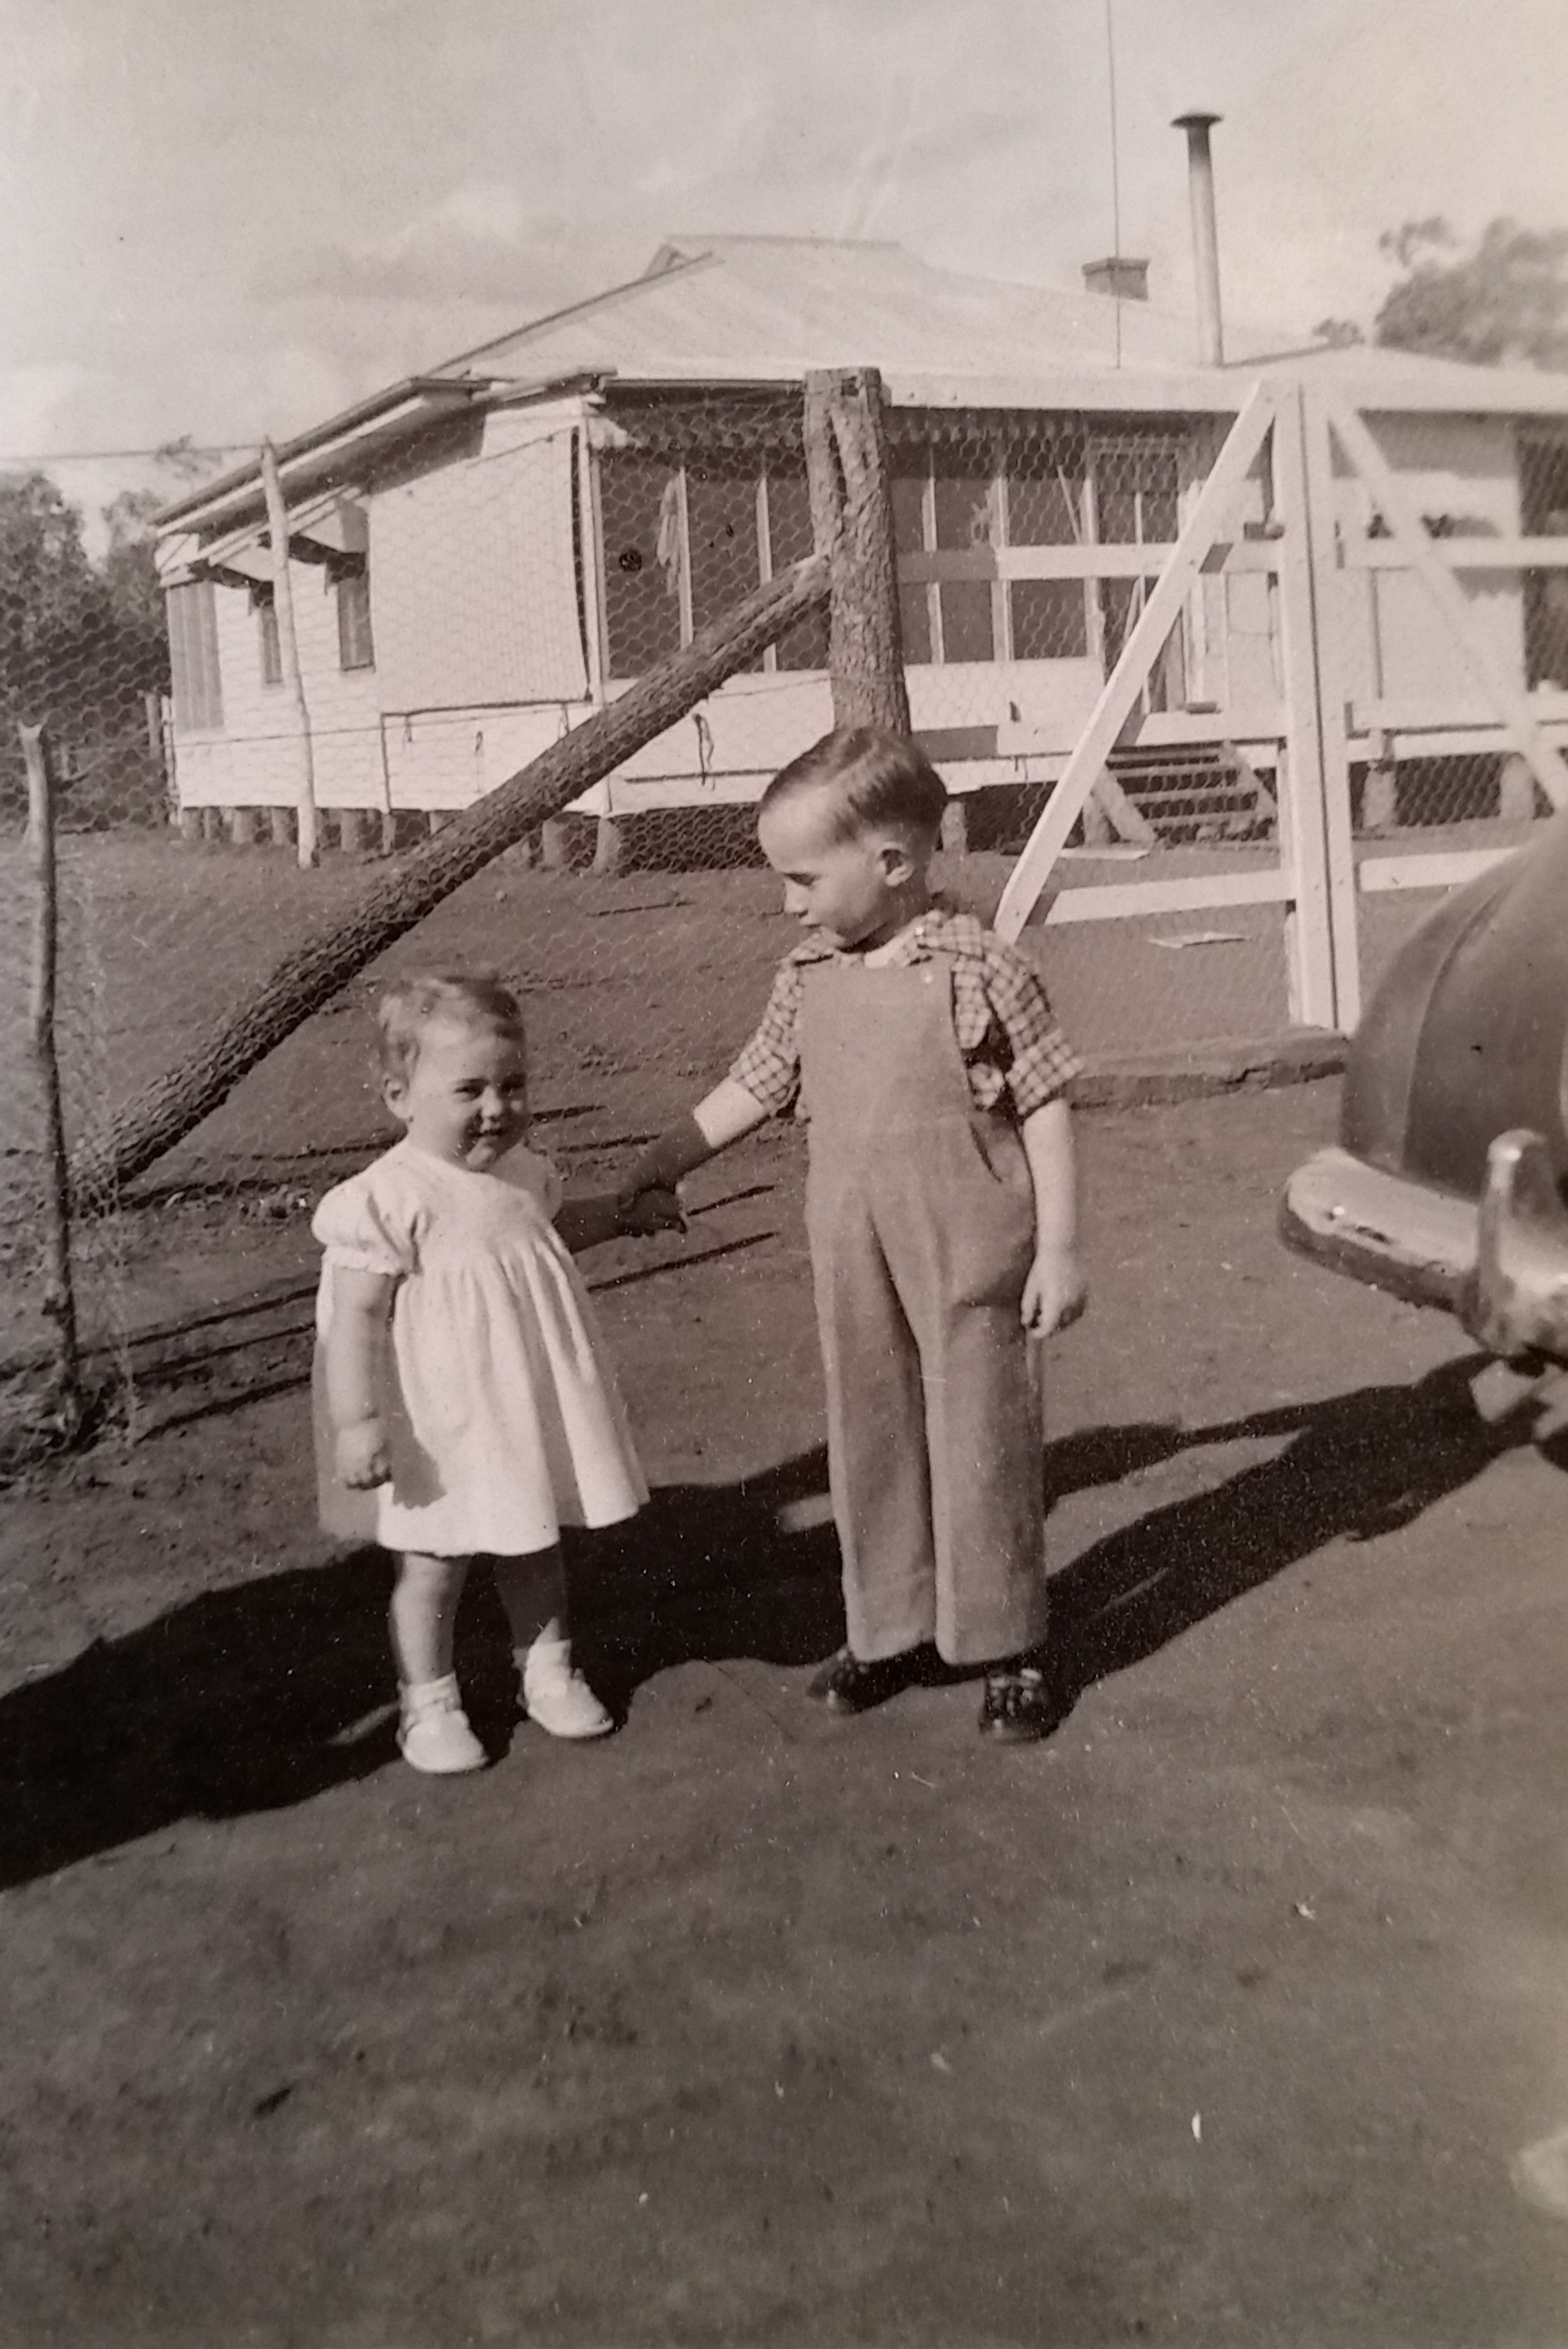 Lisa's father Chris Stanmore with his sister Jenny outside the old Eurella homestead, c. 1957, image supplied.